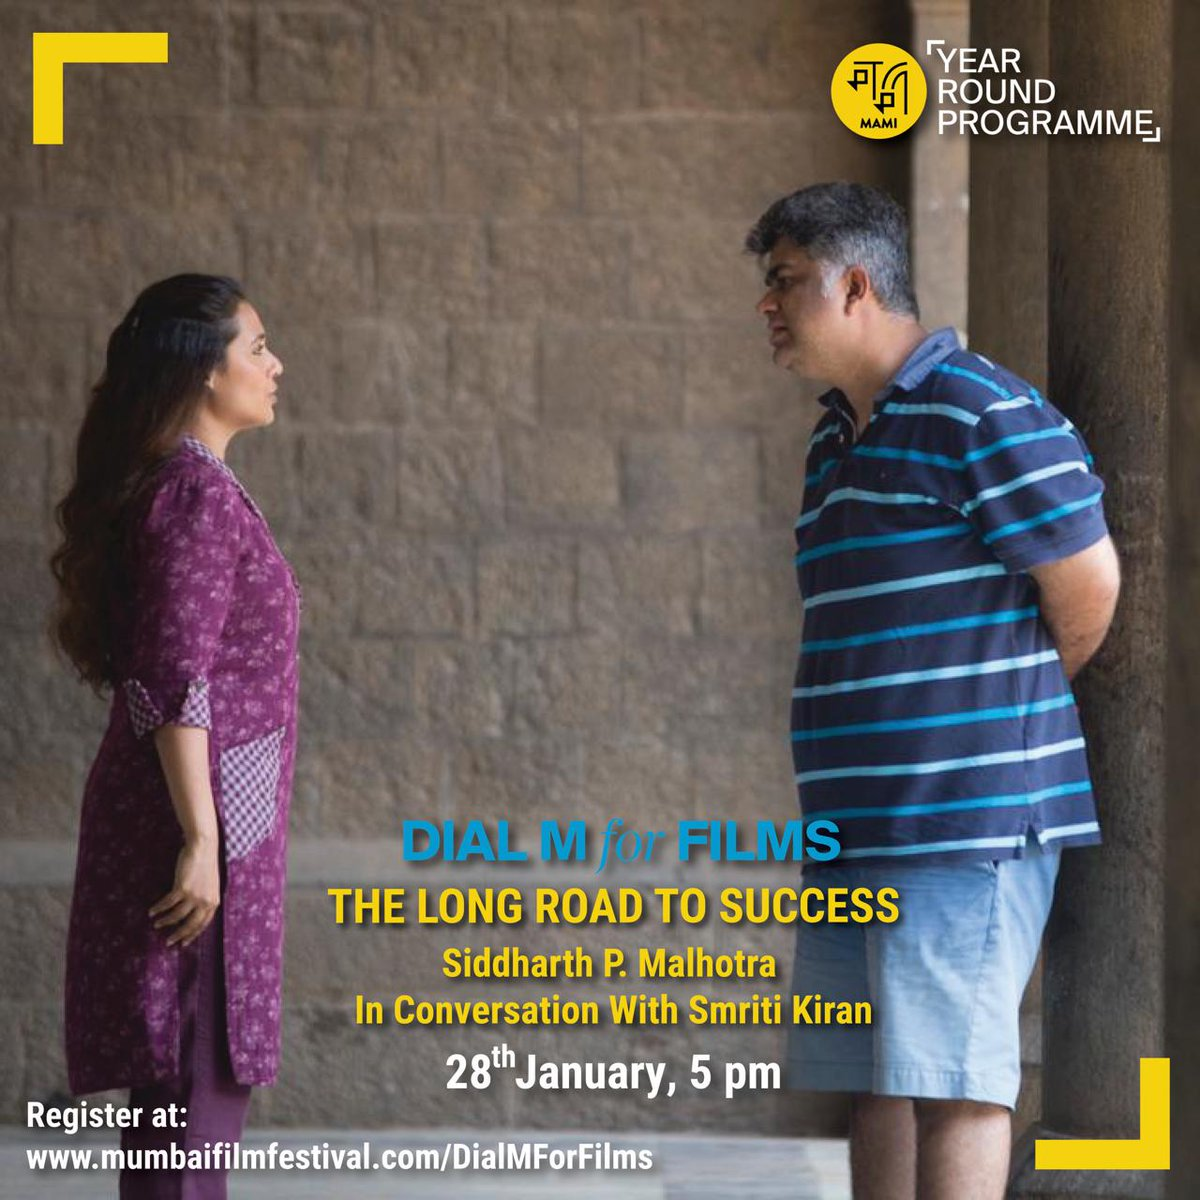 A dream debut doesn't guarantee success or longevity. He might have had resources but he has fought long and hard for credibility. Director, producer @sidpmalhotra on his long road to success on 28th January, 5 pm. #DialMForFilms Register here -